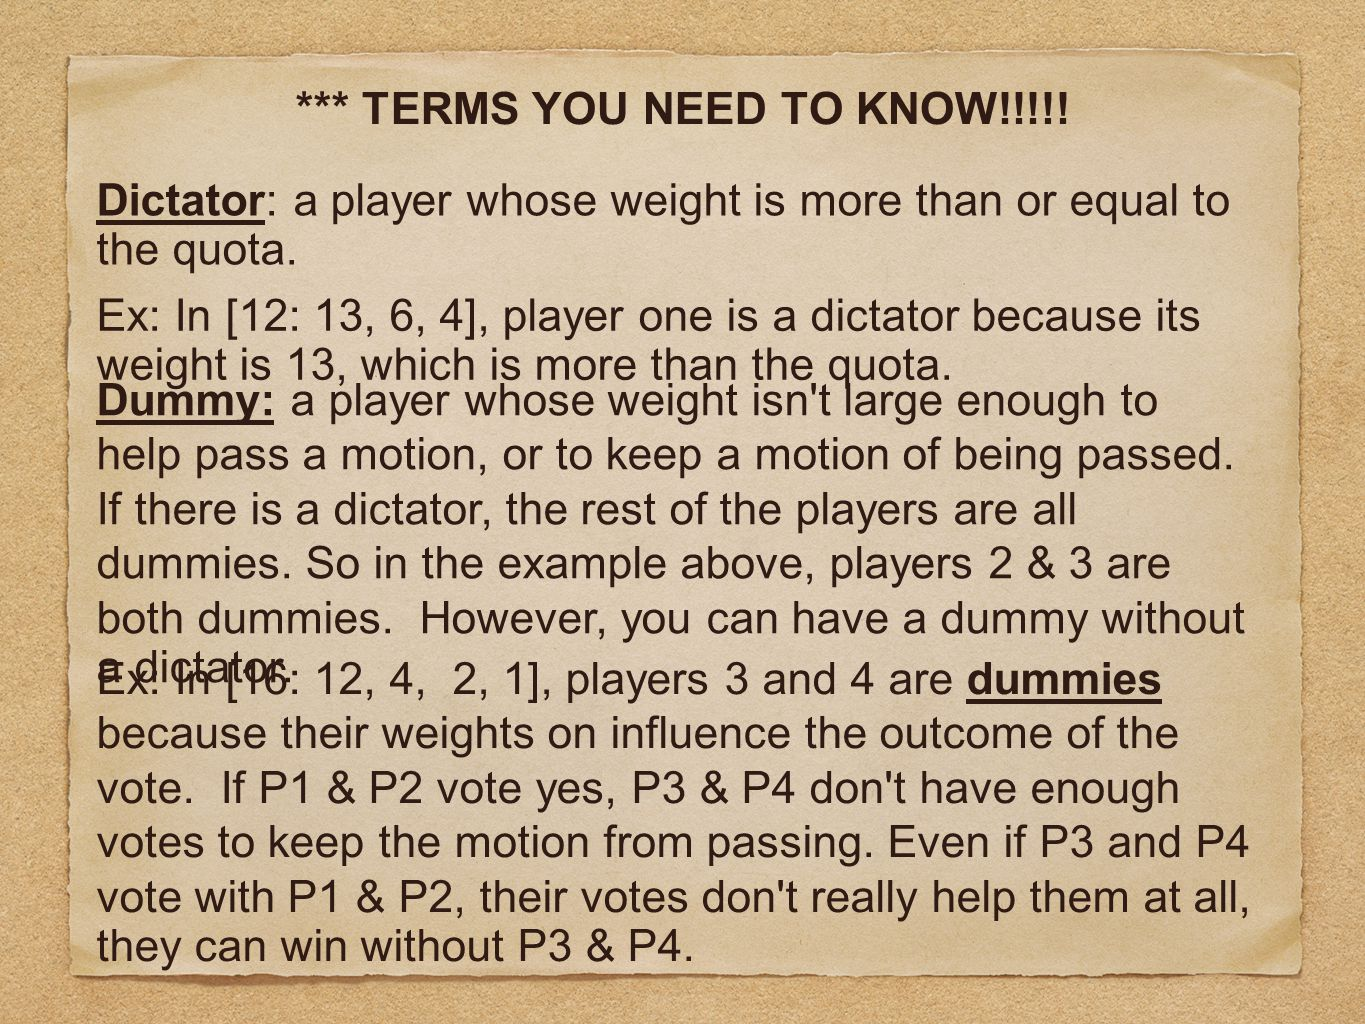 *** TERMS YOU NEED TO KNOW!!!!!